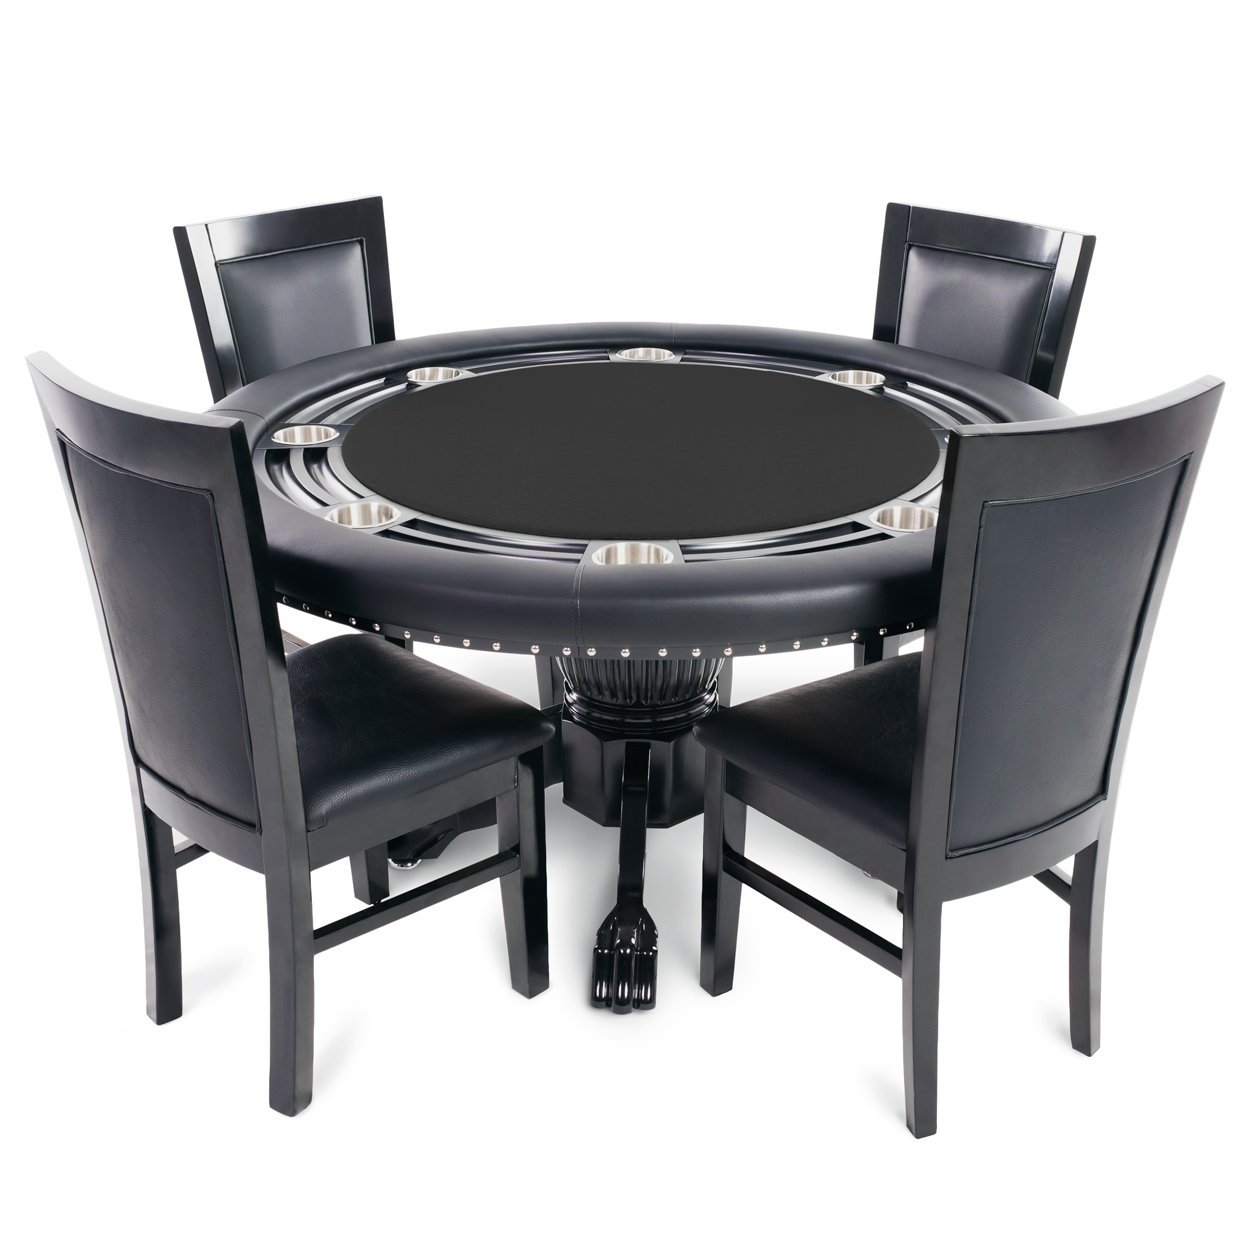 BBO Poker Nighthawk Poker Table for 8 Players with Black Speed Cloth Playing Surface, 55-Inch Round, Includes 4 Dining Chairs